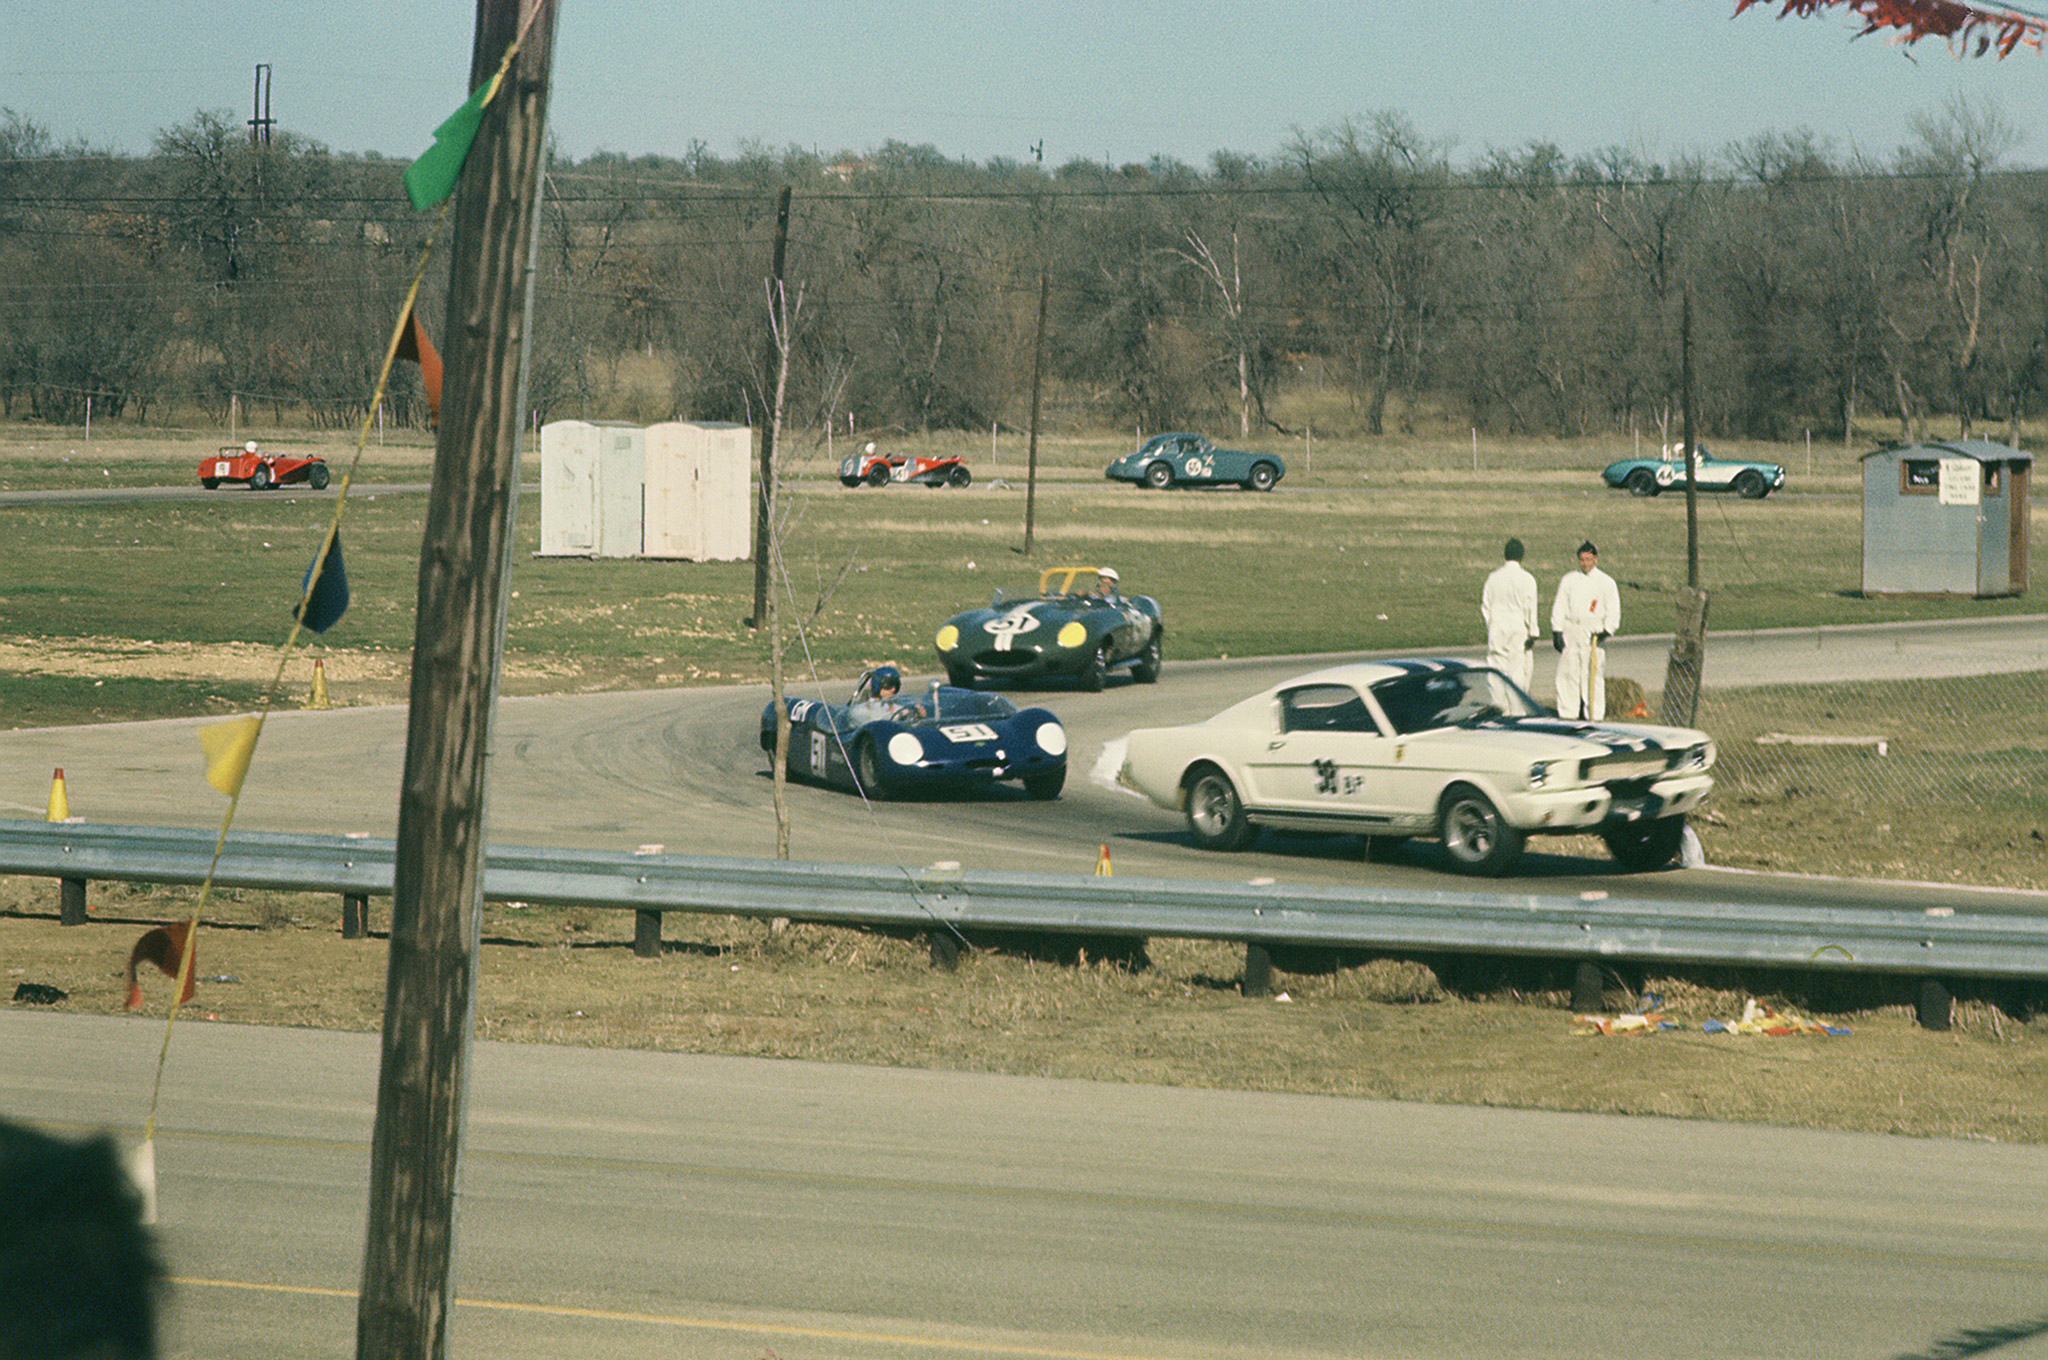 Ken Miles in the GT-350 about to enter the first long straightaway at Green Valley, in the lead of this BP-CP-DP-CM feature race that would be won by the Merlyn, #51, on Miles' tail. The Shelby, while finishing 2nd overall, would win the BP class and thus the first win for a GT-350.  The #51 in 3rd place in this photo is a BP (B Production class – same class as the GT-350) Jaguar driven by Louis Heuss, the #44 Corvette was driven by G. L. Henderson, and trialing him is another Jaguar (green), #65, driven by James Temme, followed by the red Jaguar, #41, piloted by Dave Dooley. Dave would wreck his Jaguar in this race, and later in the day would compete in Jim Thompson's '65 Mustang fastback HiPo. The last car, #9, is a red Lotus S7 driven by M. E. Grove.   (Weldon Nash photo)